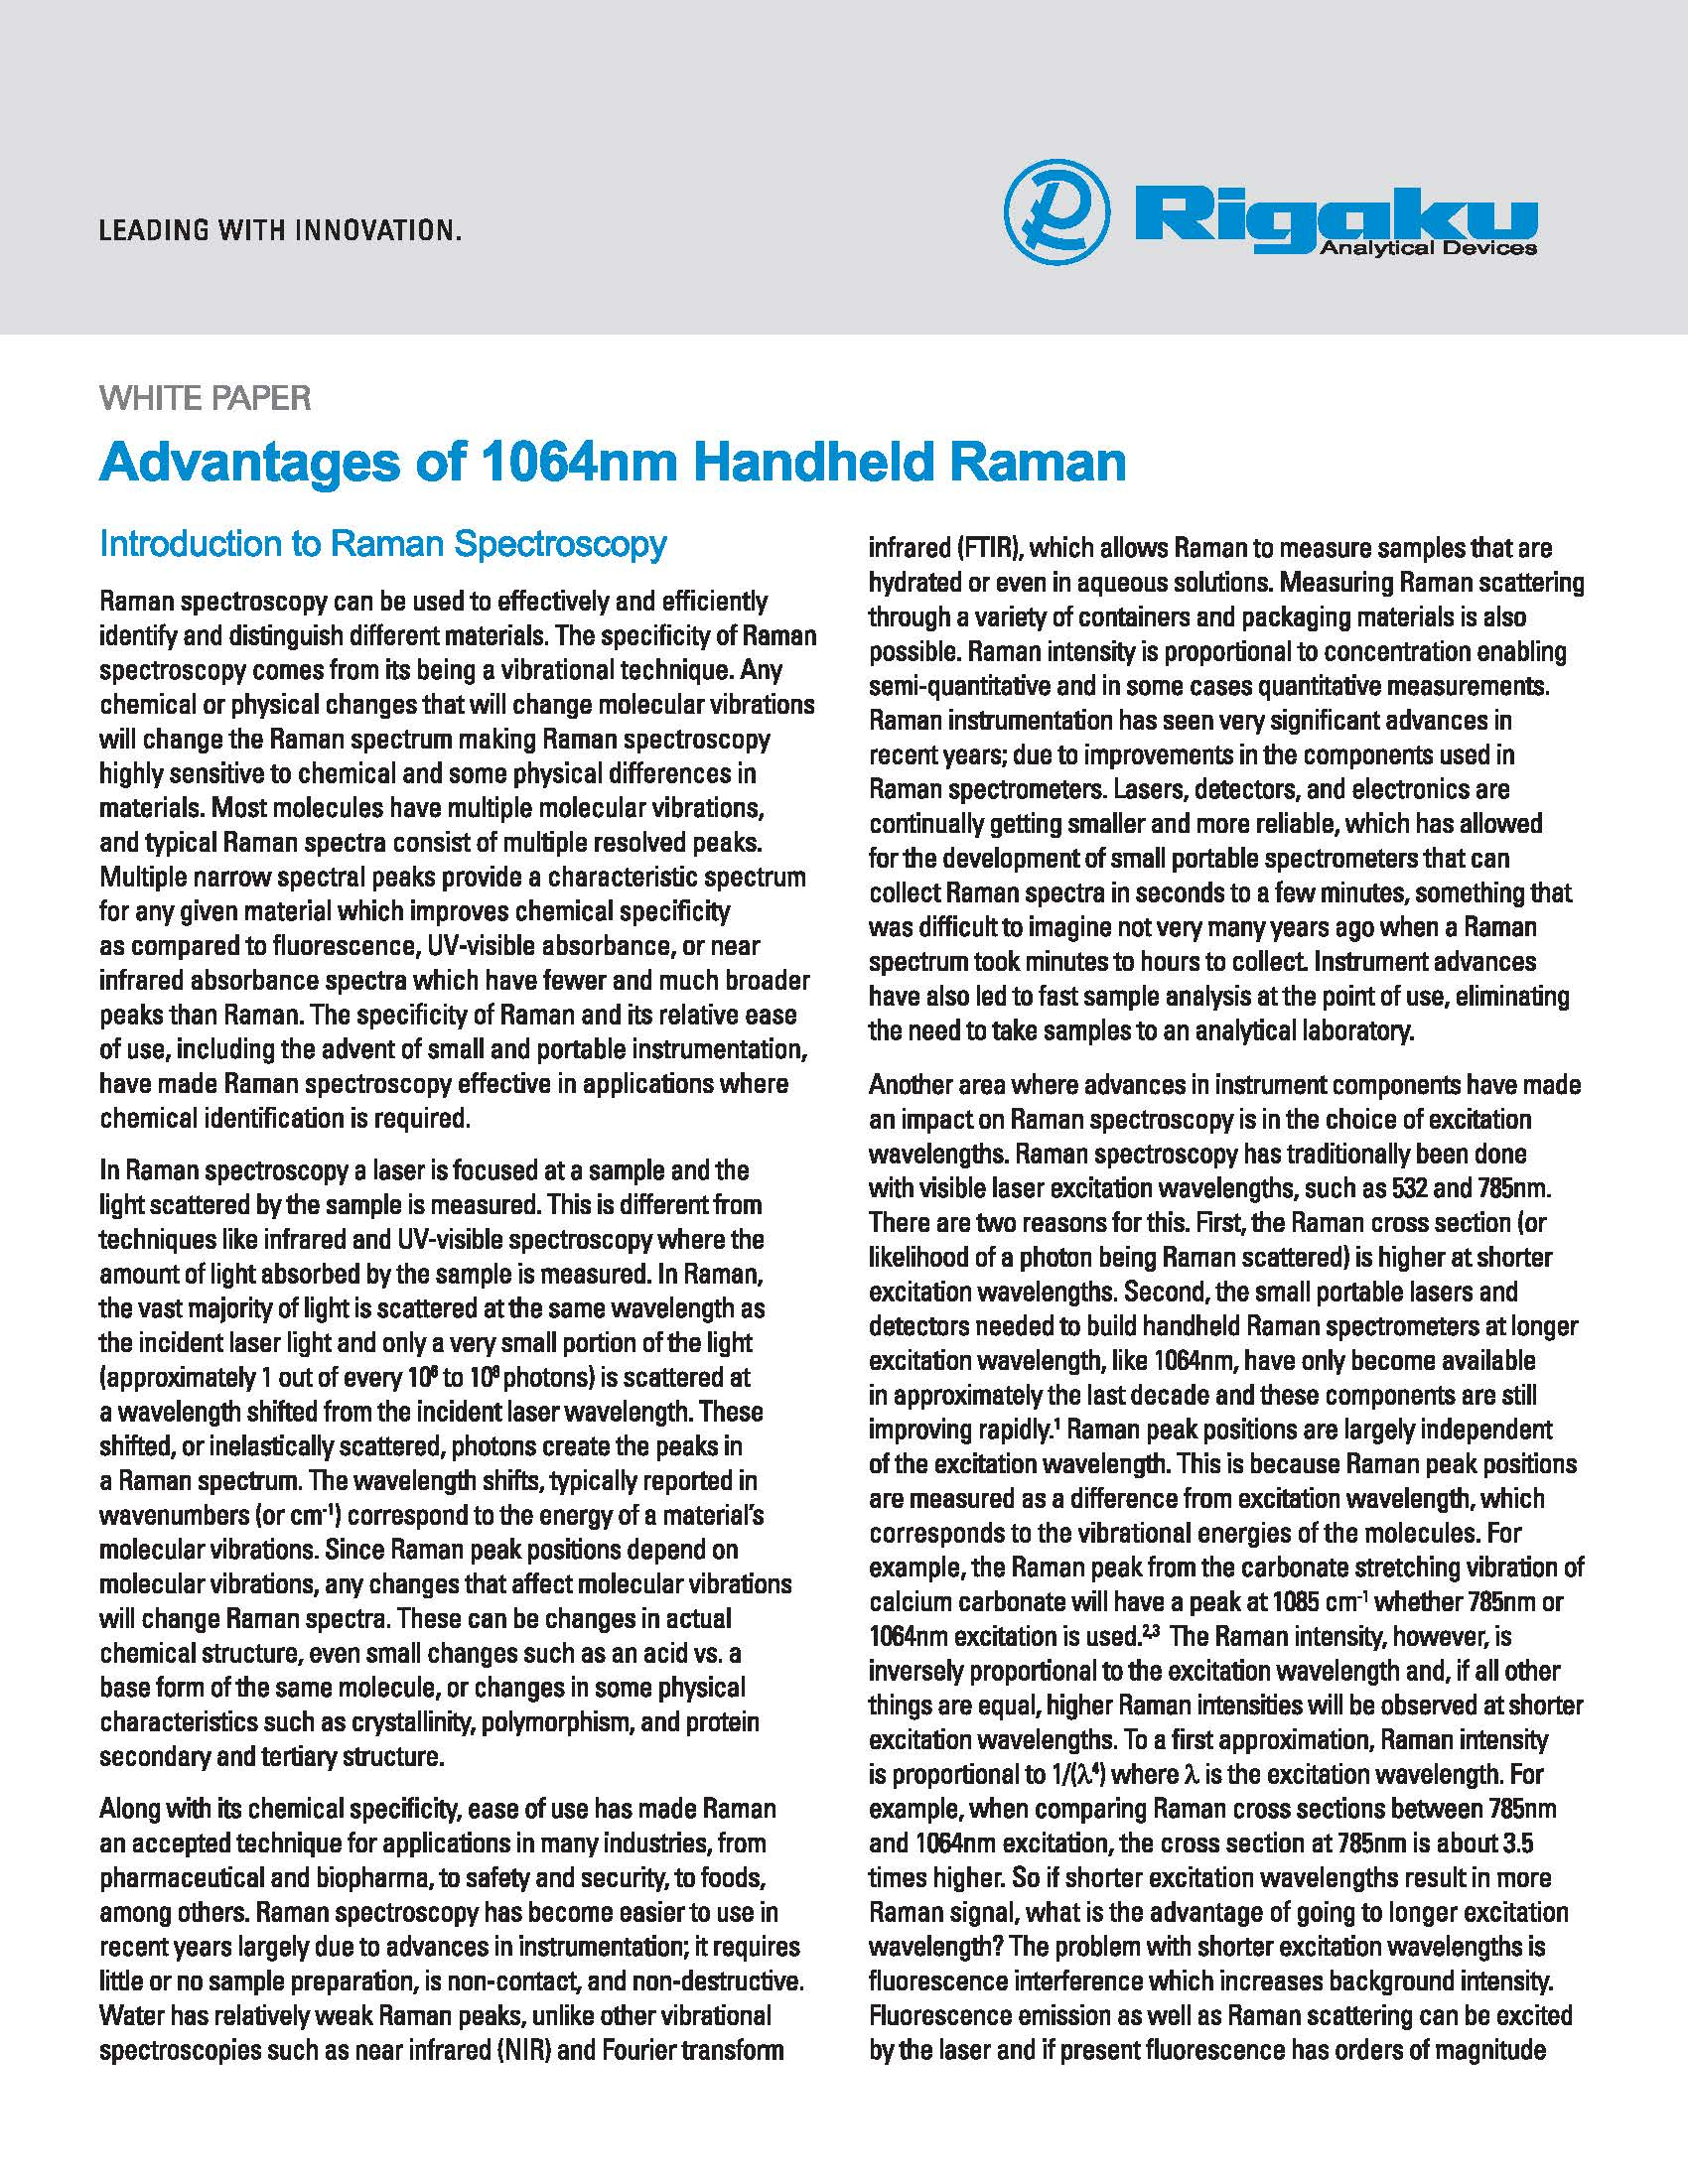 White paper - Advantages of 1064nm Handheld Raman_Page_01